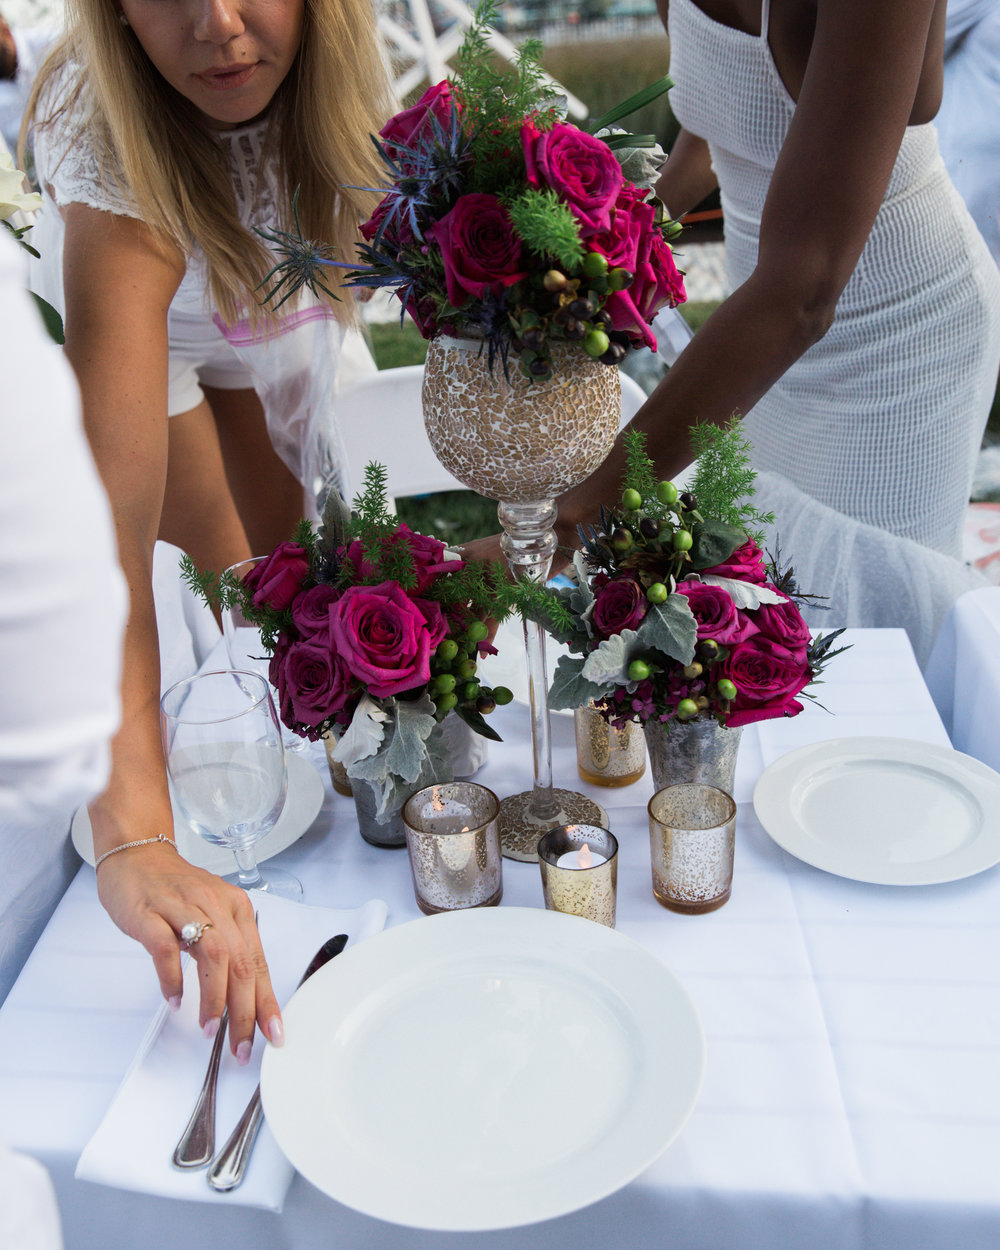 Diner En Blanc Baltimore Megapixels Media Photography-30.jpg